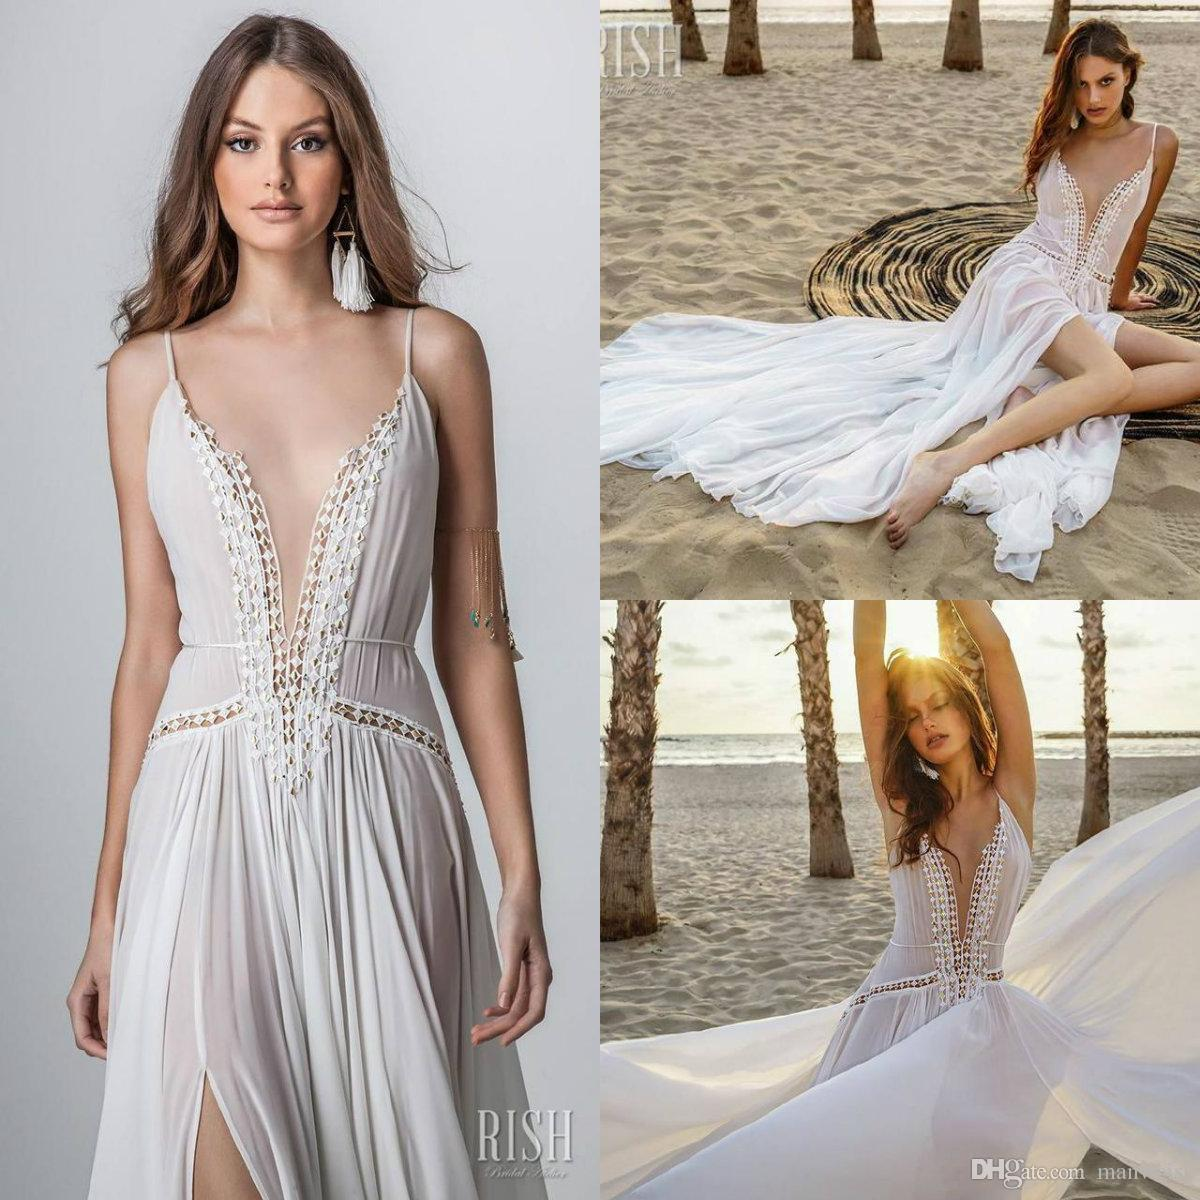 Bohemia 2019 Rish Wedding Dresses Sexy Split Chiffon Spaghetti V Neck Lace Appliqued Beach Boho Wedding Dress Bridal Gowns Robe De Mariée